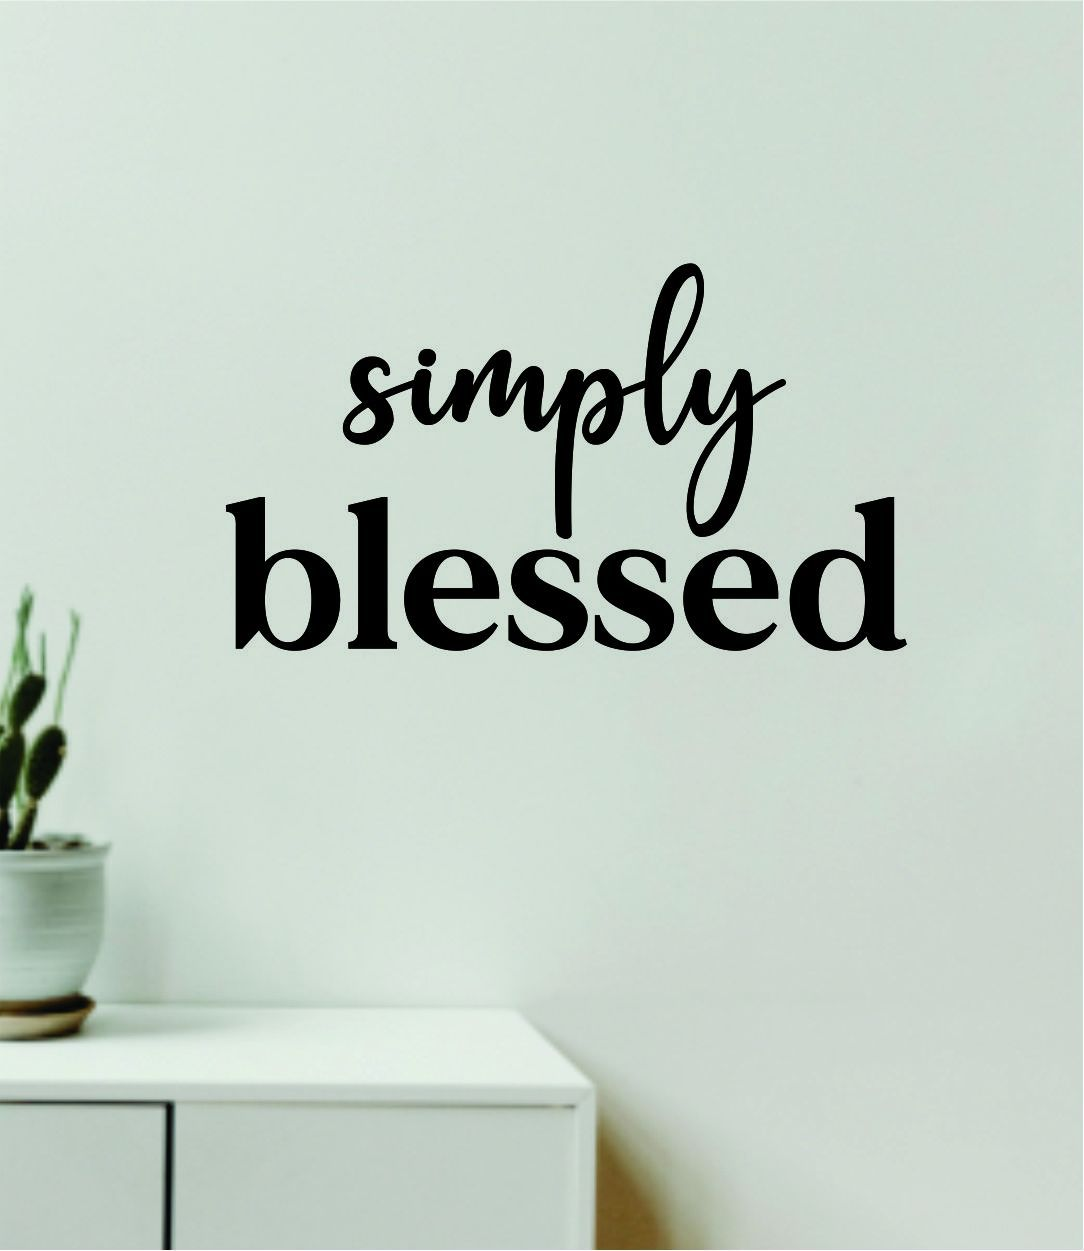 Simply Blessed Wall Decal Home Decor Vinyl Art Sticker Bedroom Quote Nursery Baby Teen Boy Girl School Inspirational Love - purple